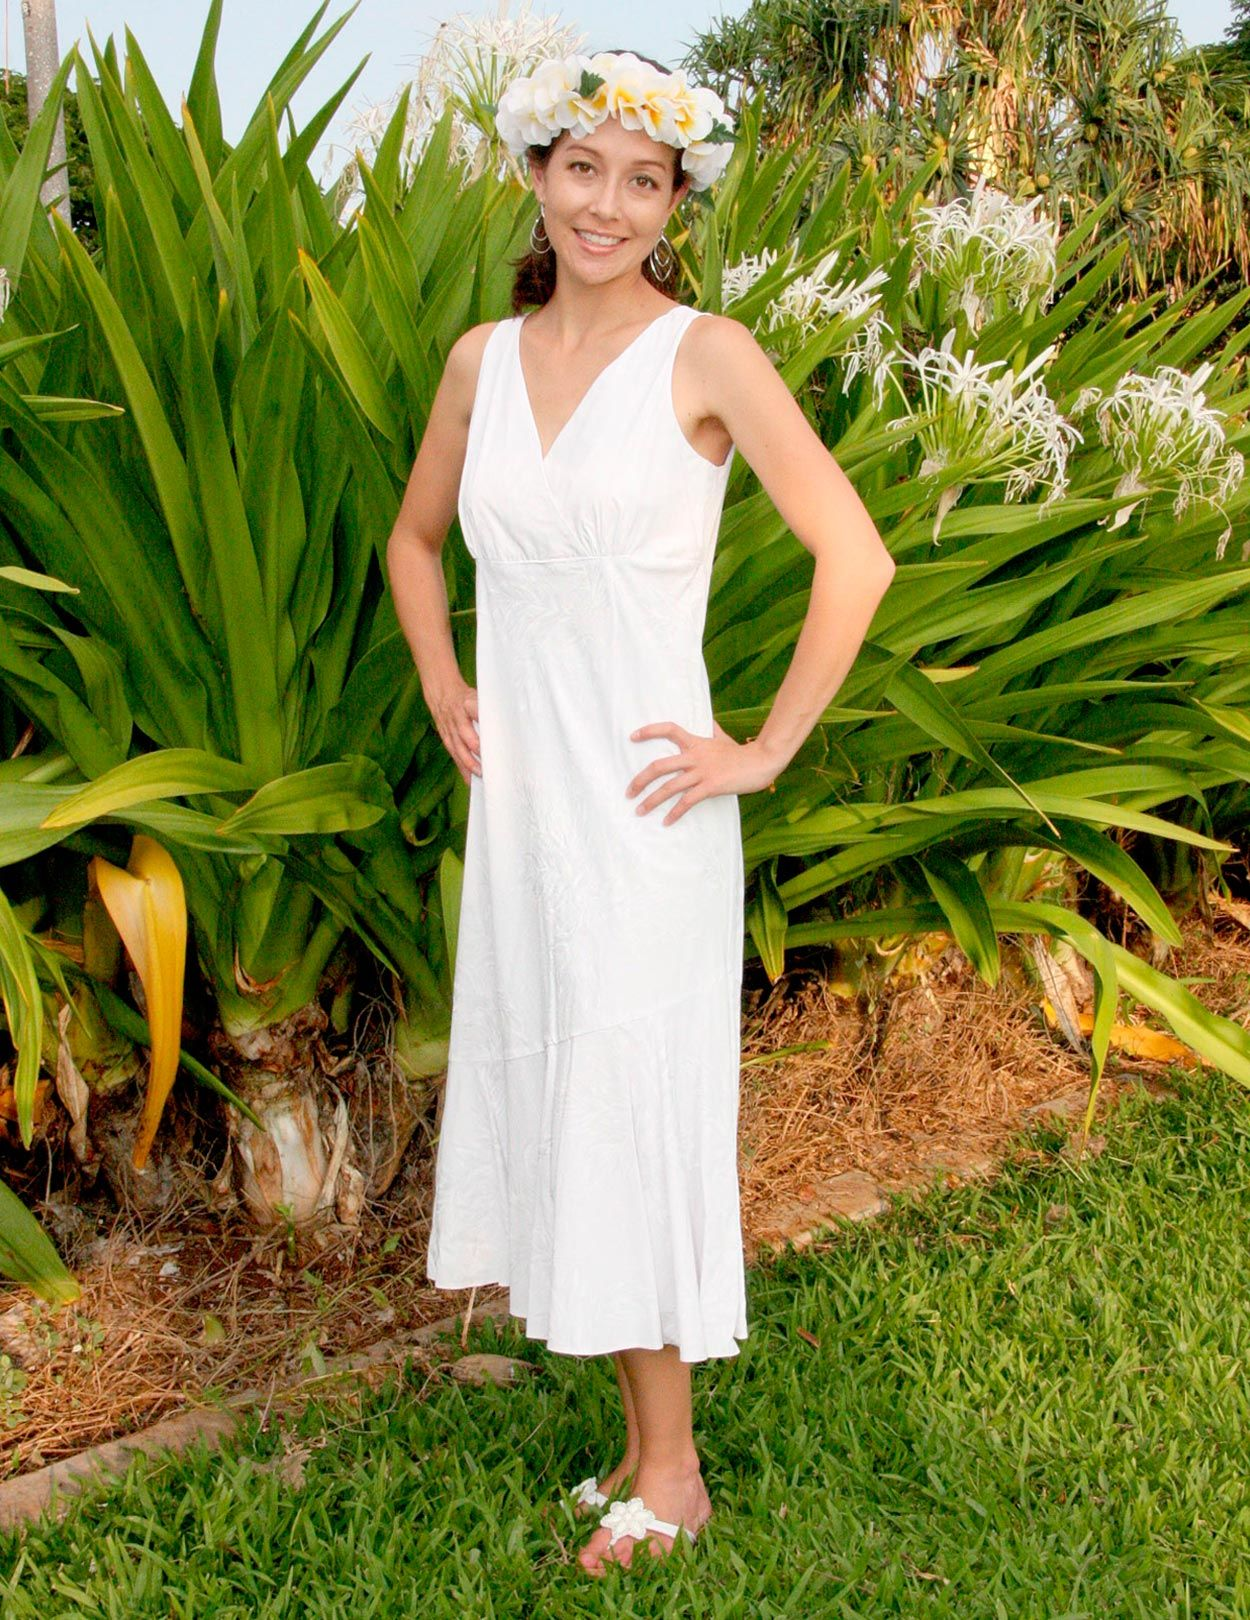 Hawaiian wedding dress  Check out the deal on White Lehue Wedding V Neck Mid Lenght Dress